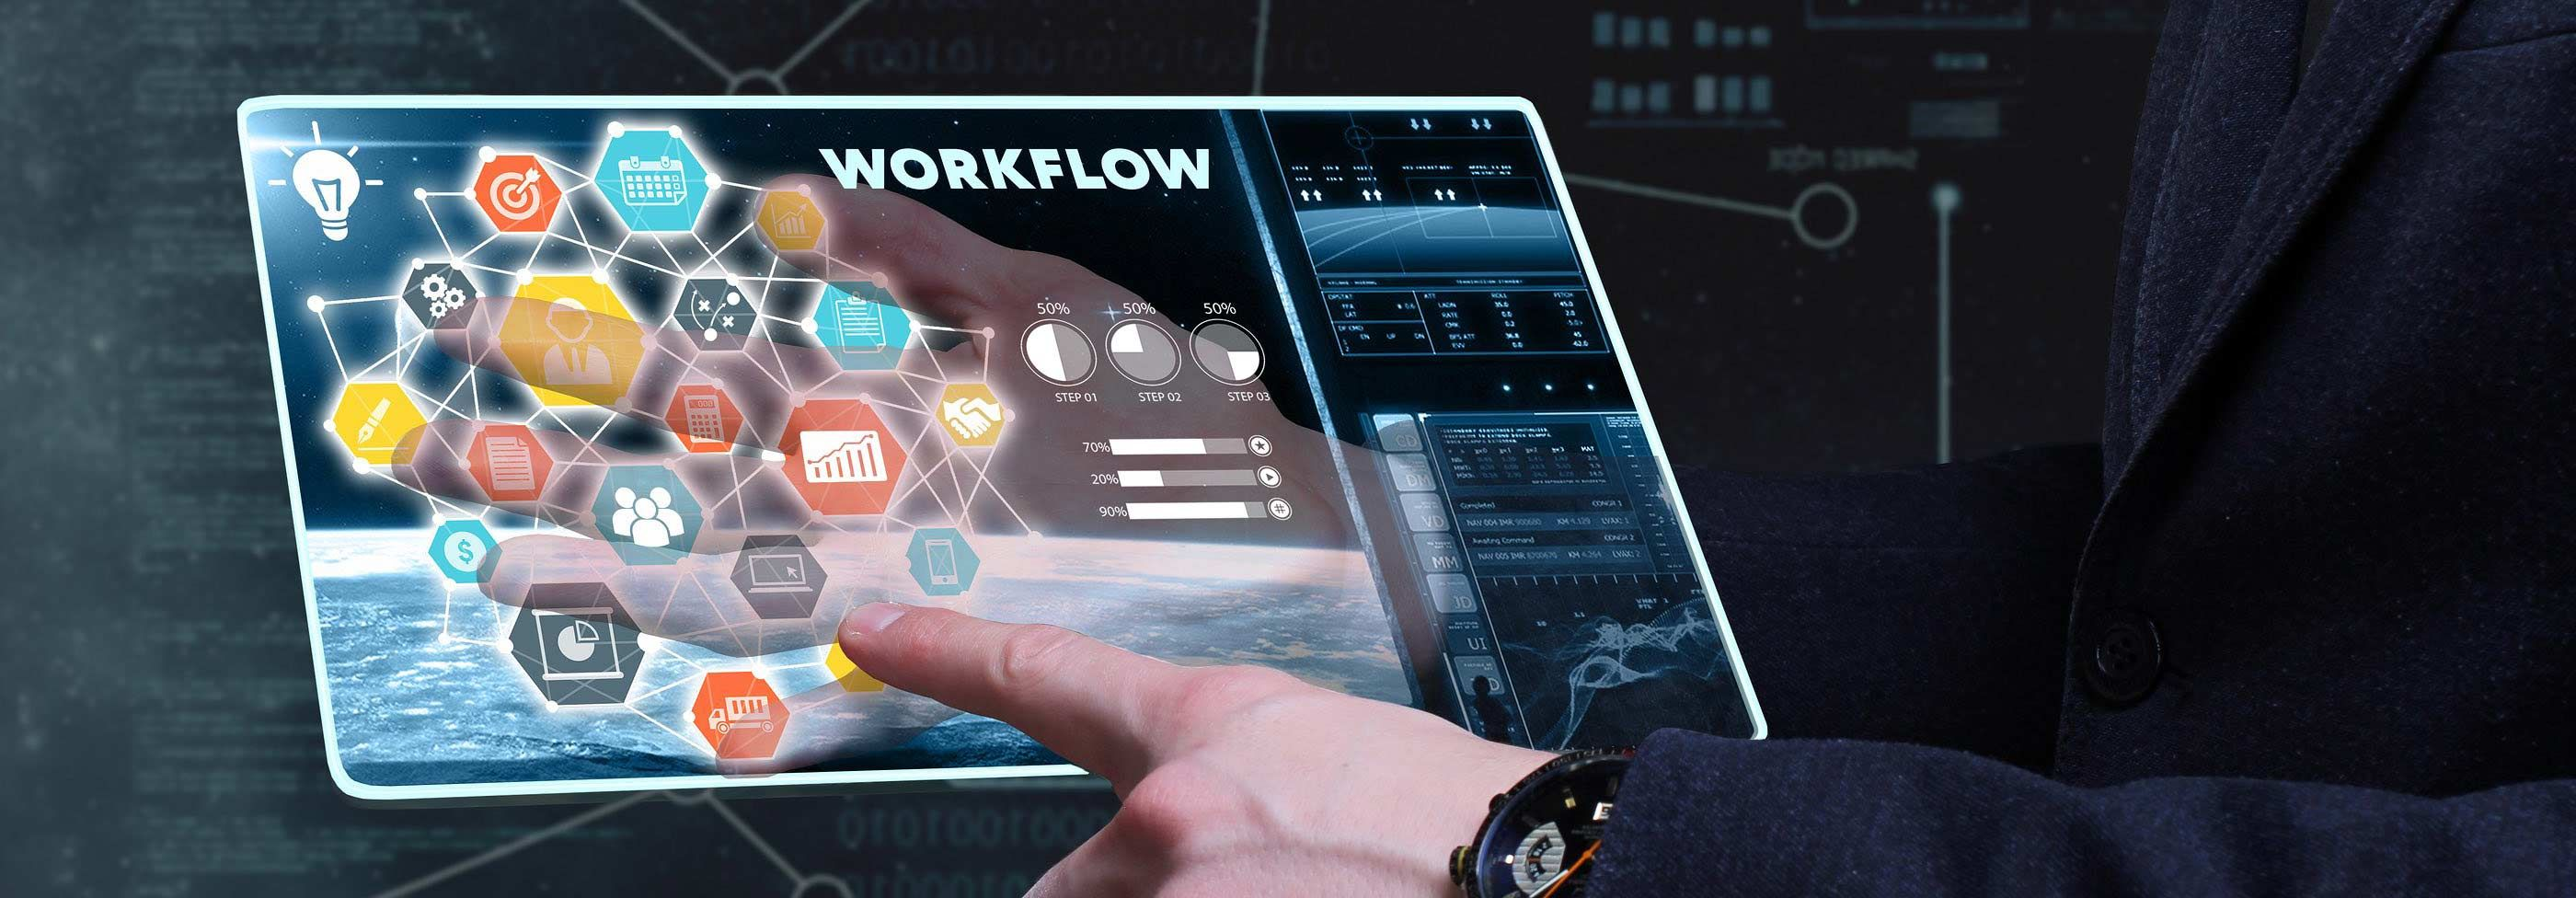 Workflow-techsmall